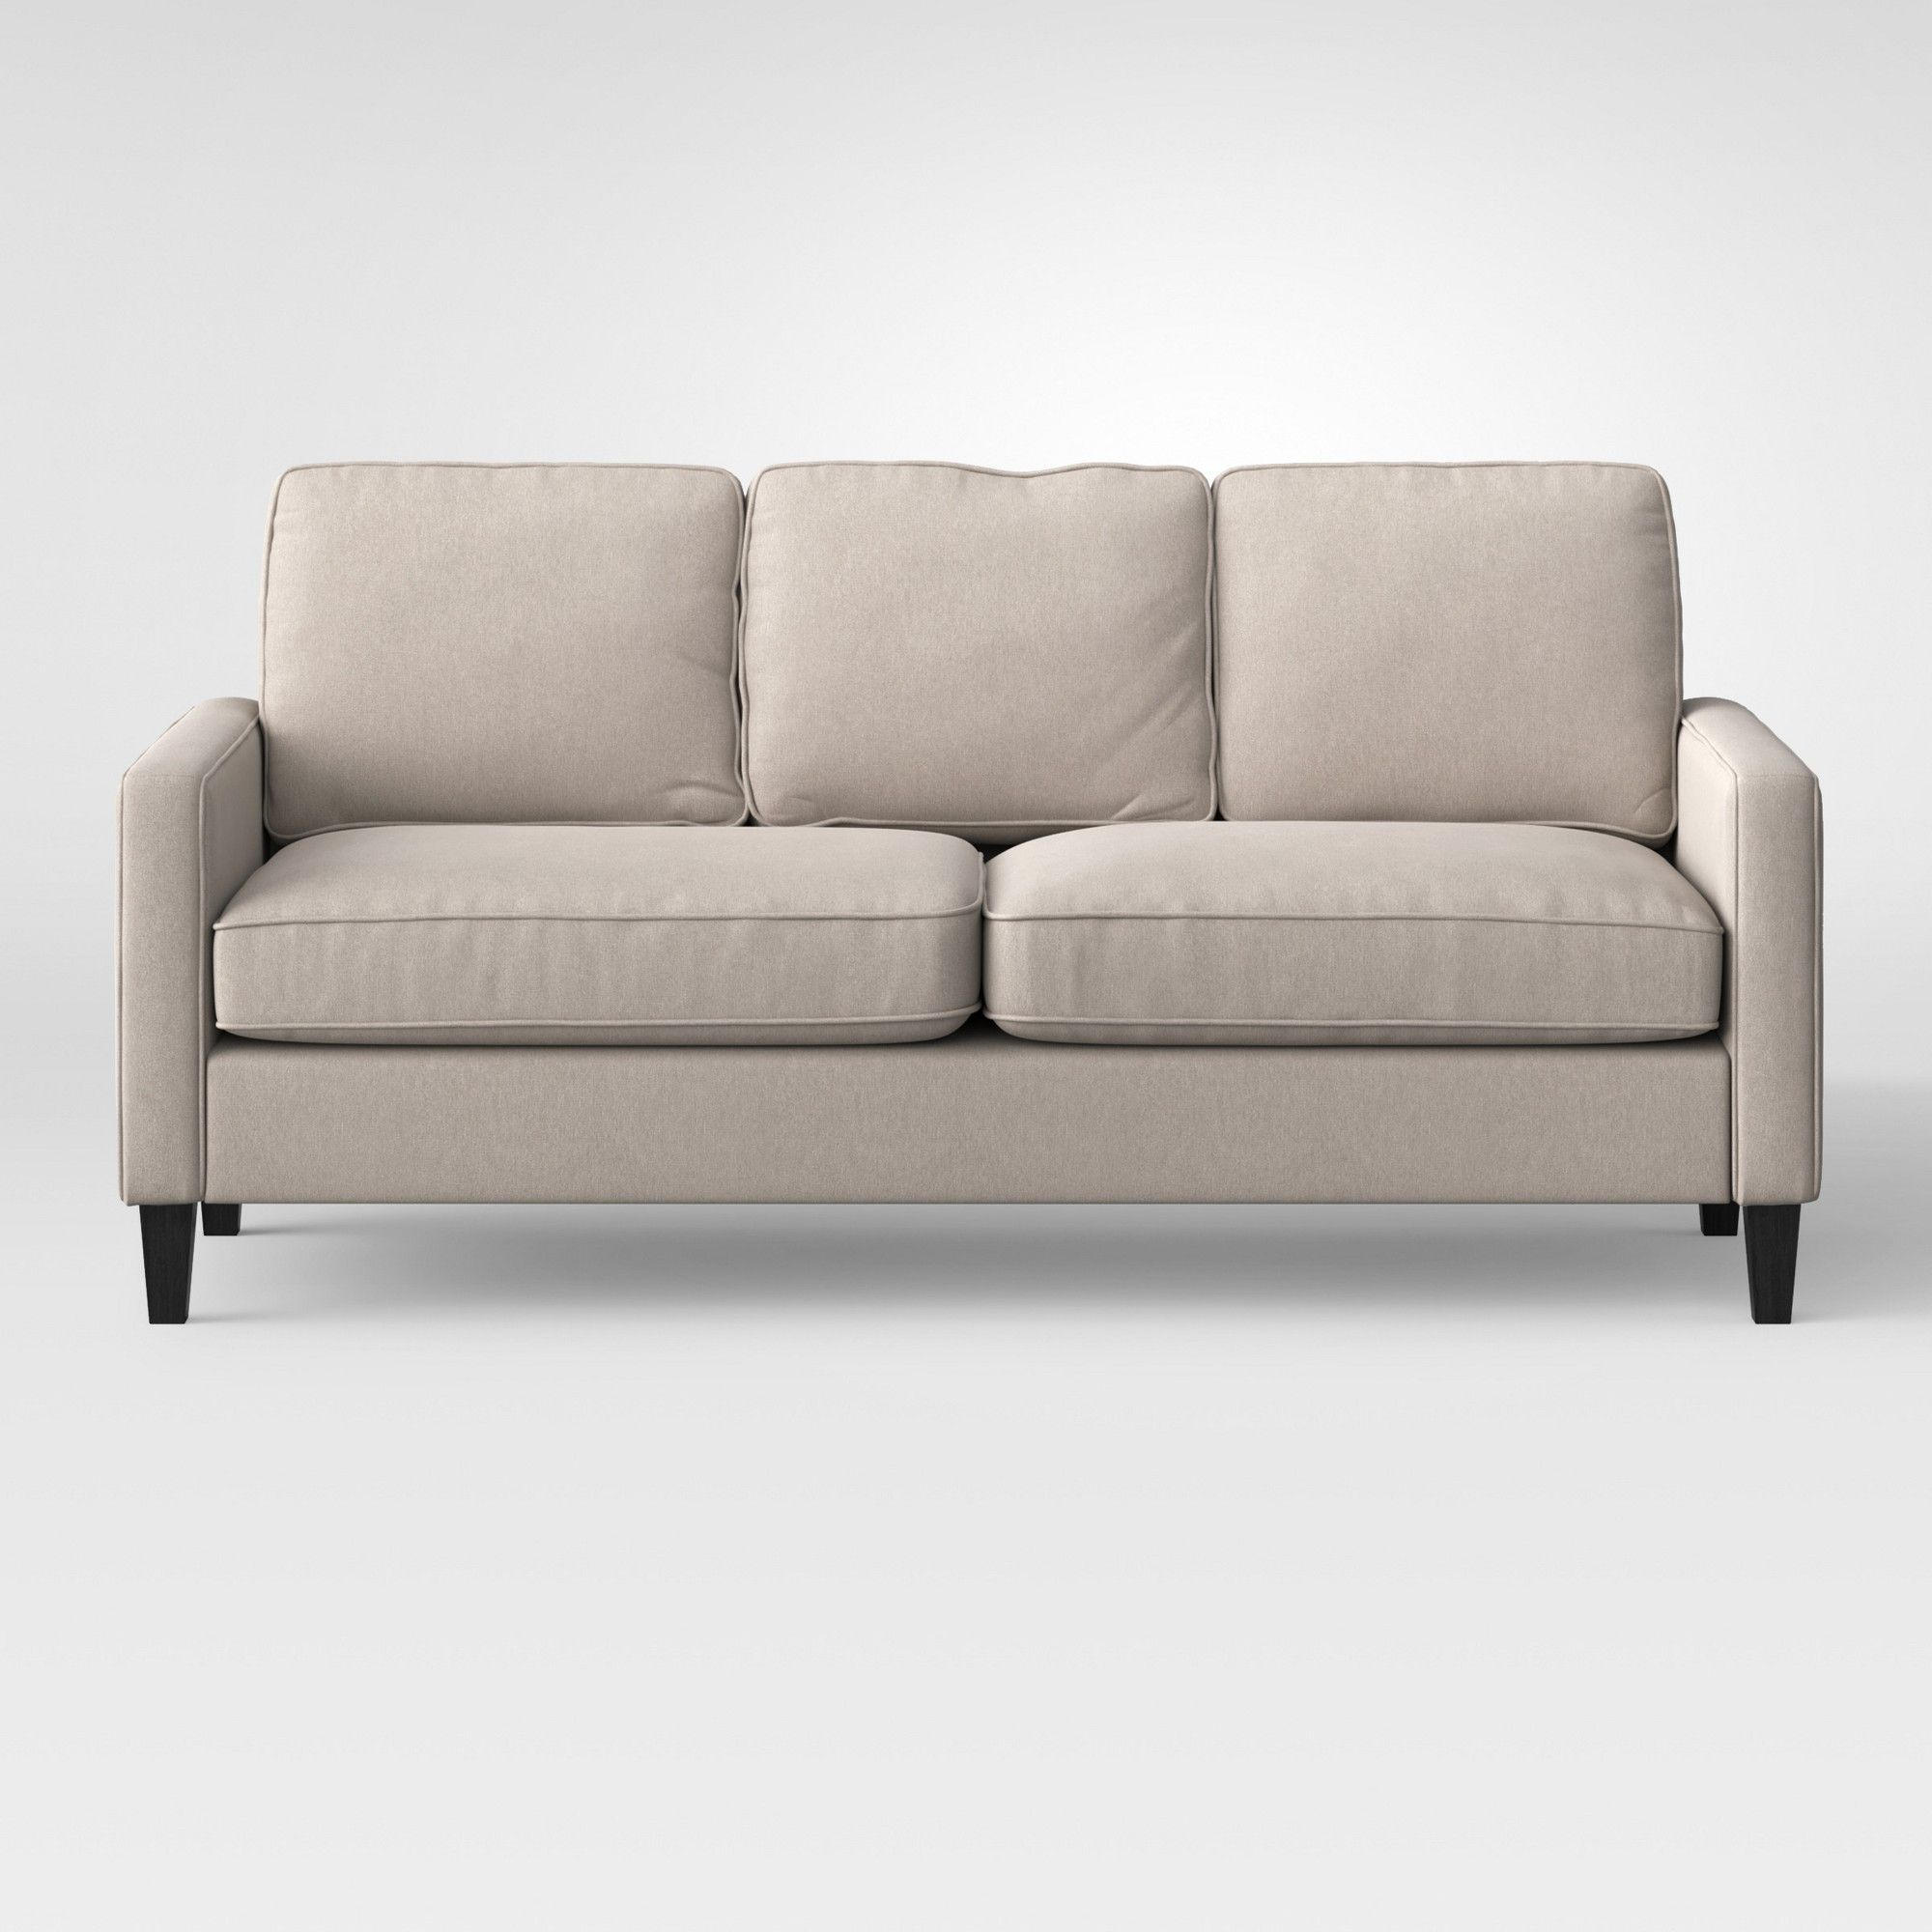 Elmhurst Loose Back Cushion Sofa Beige Project 62 Products